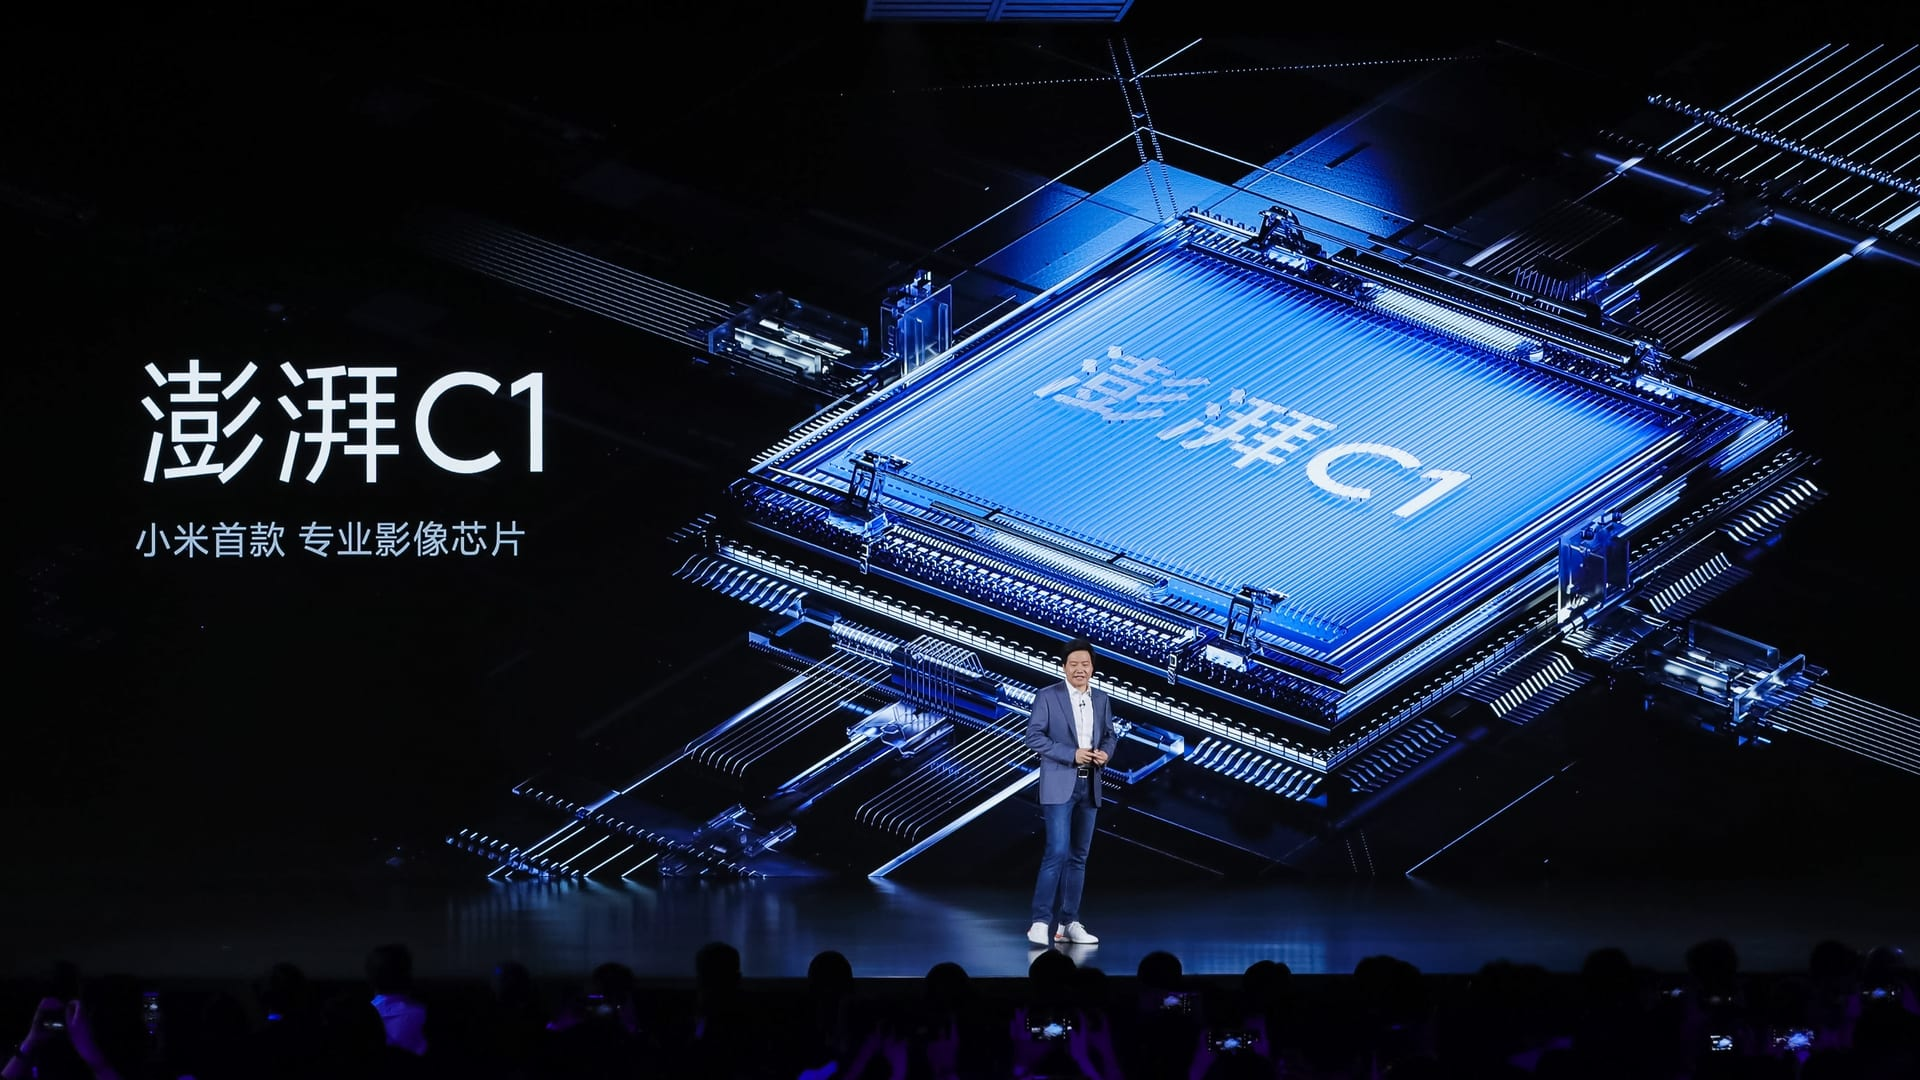 Xiaomi CEO Lei Jun unveils the company's first camera chipset called the Surge C1, during an event on Tuesday, March 30, 2021. It will feature in the company's Mi Mix Fold smartphone.